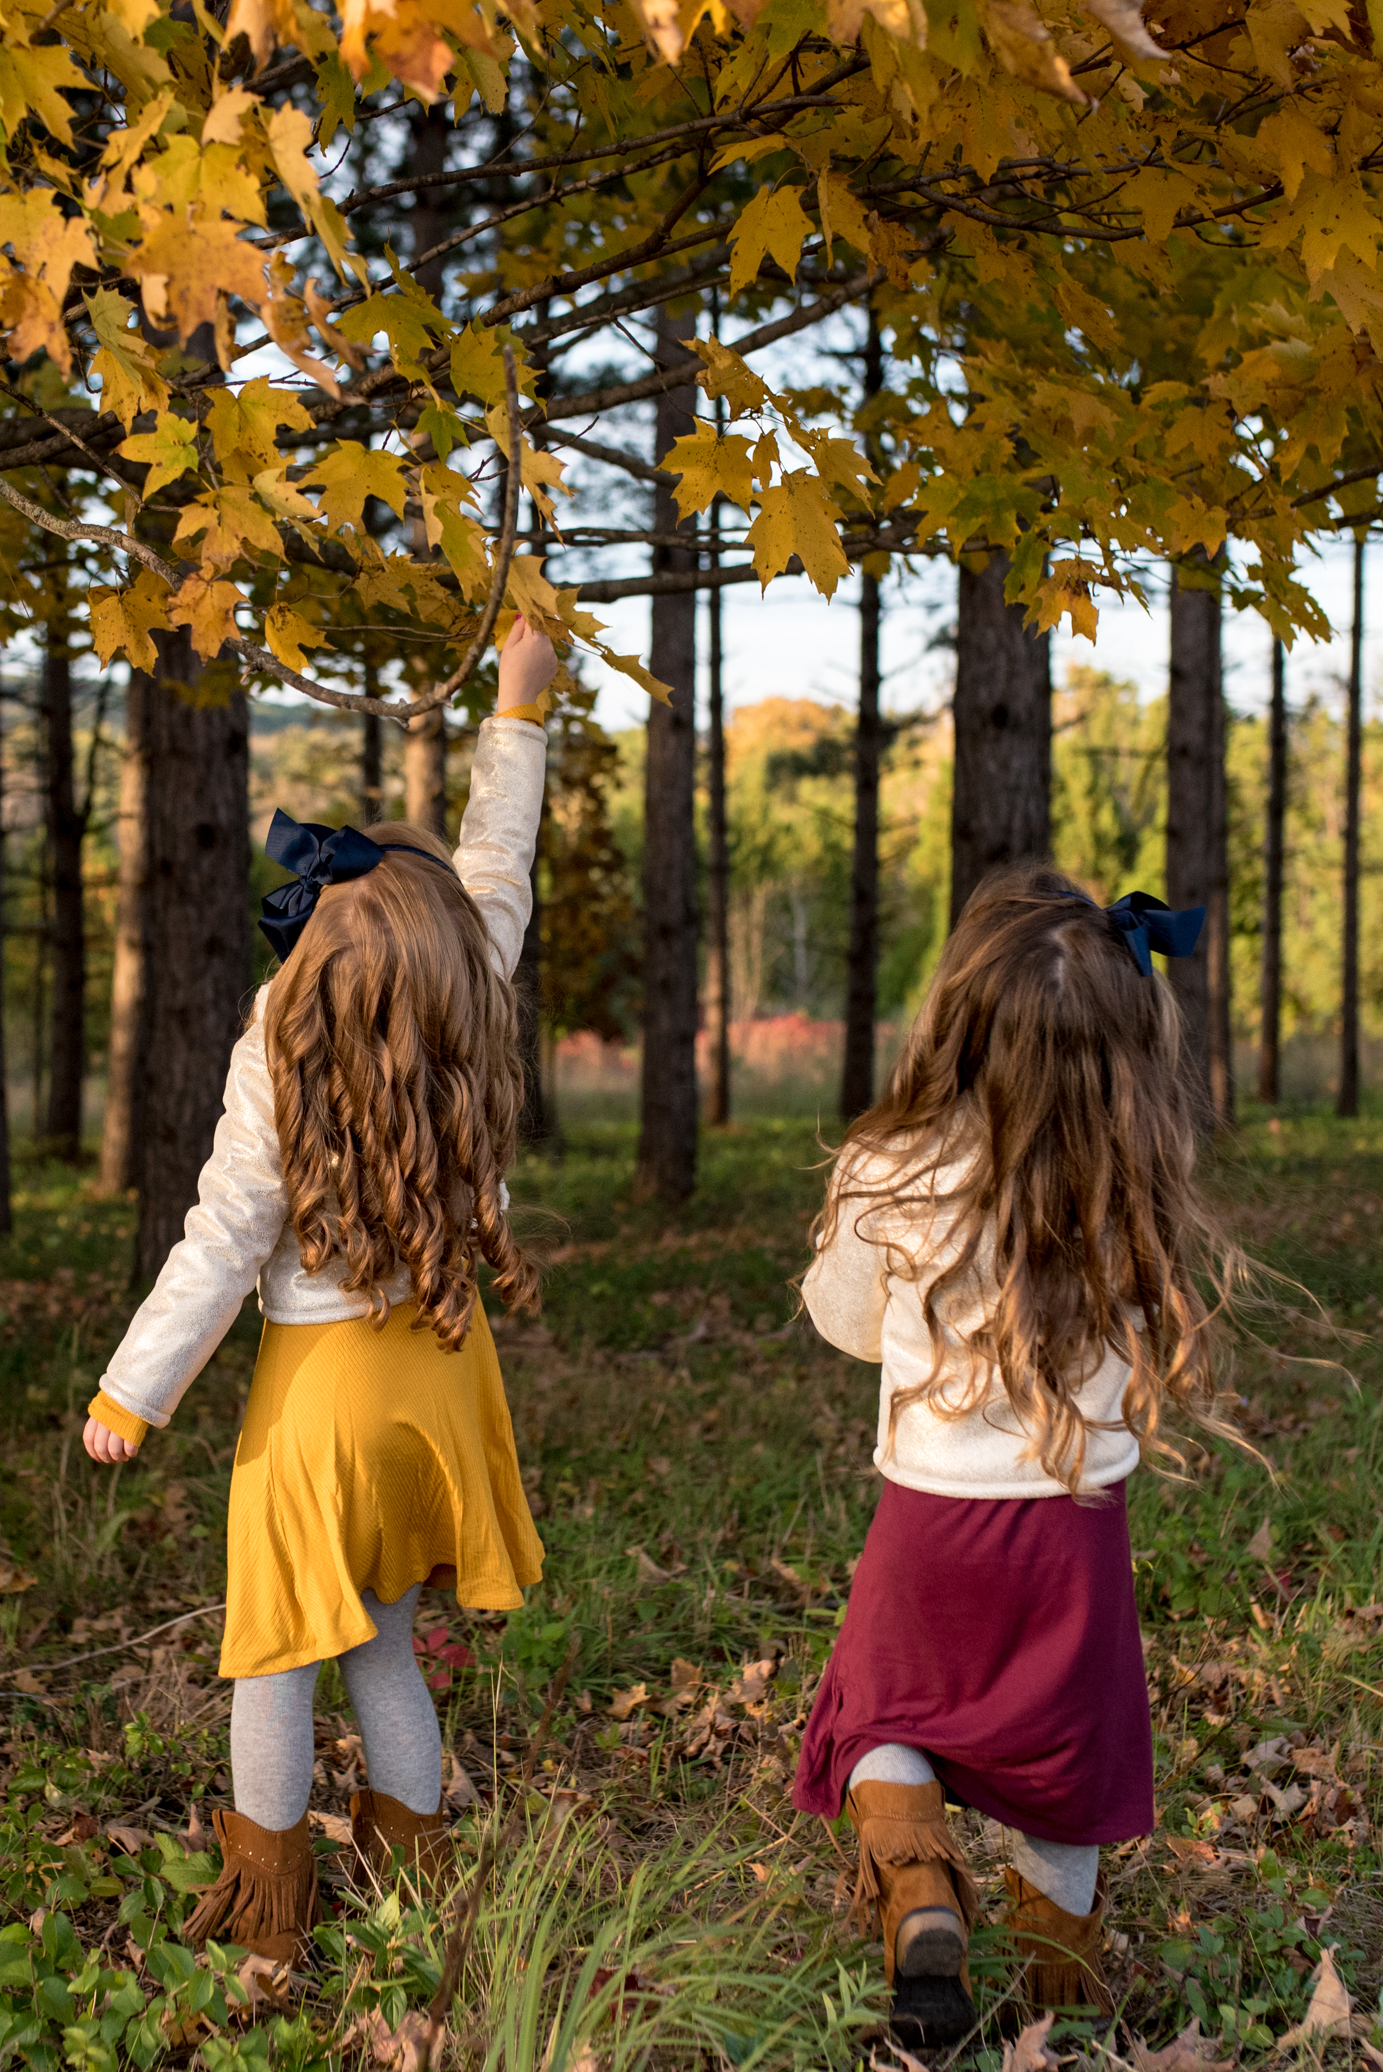 Two girls with long hair reaching for fall leaves in a tree